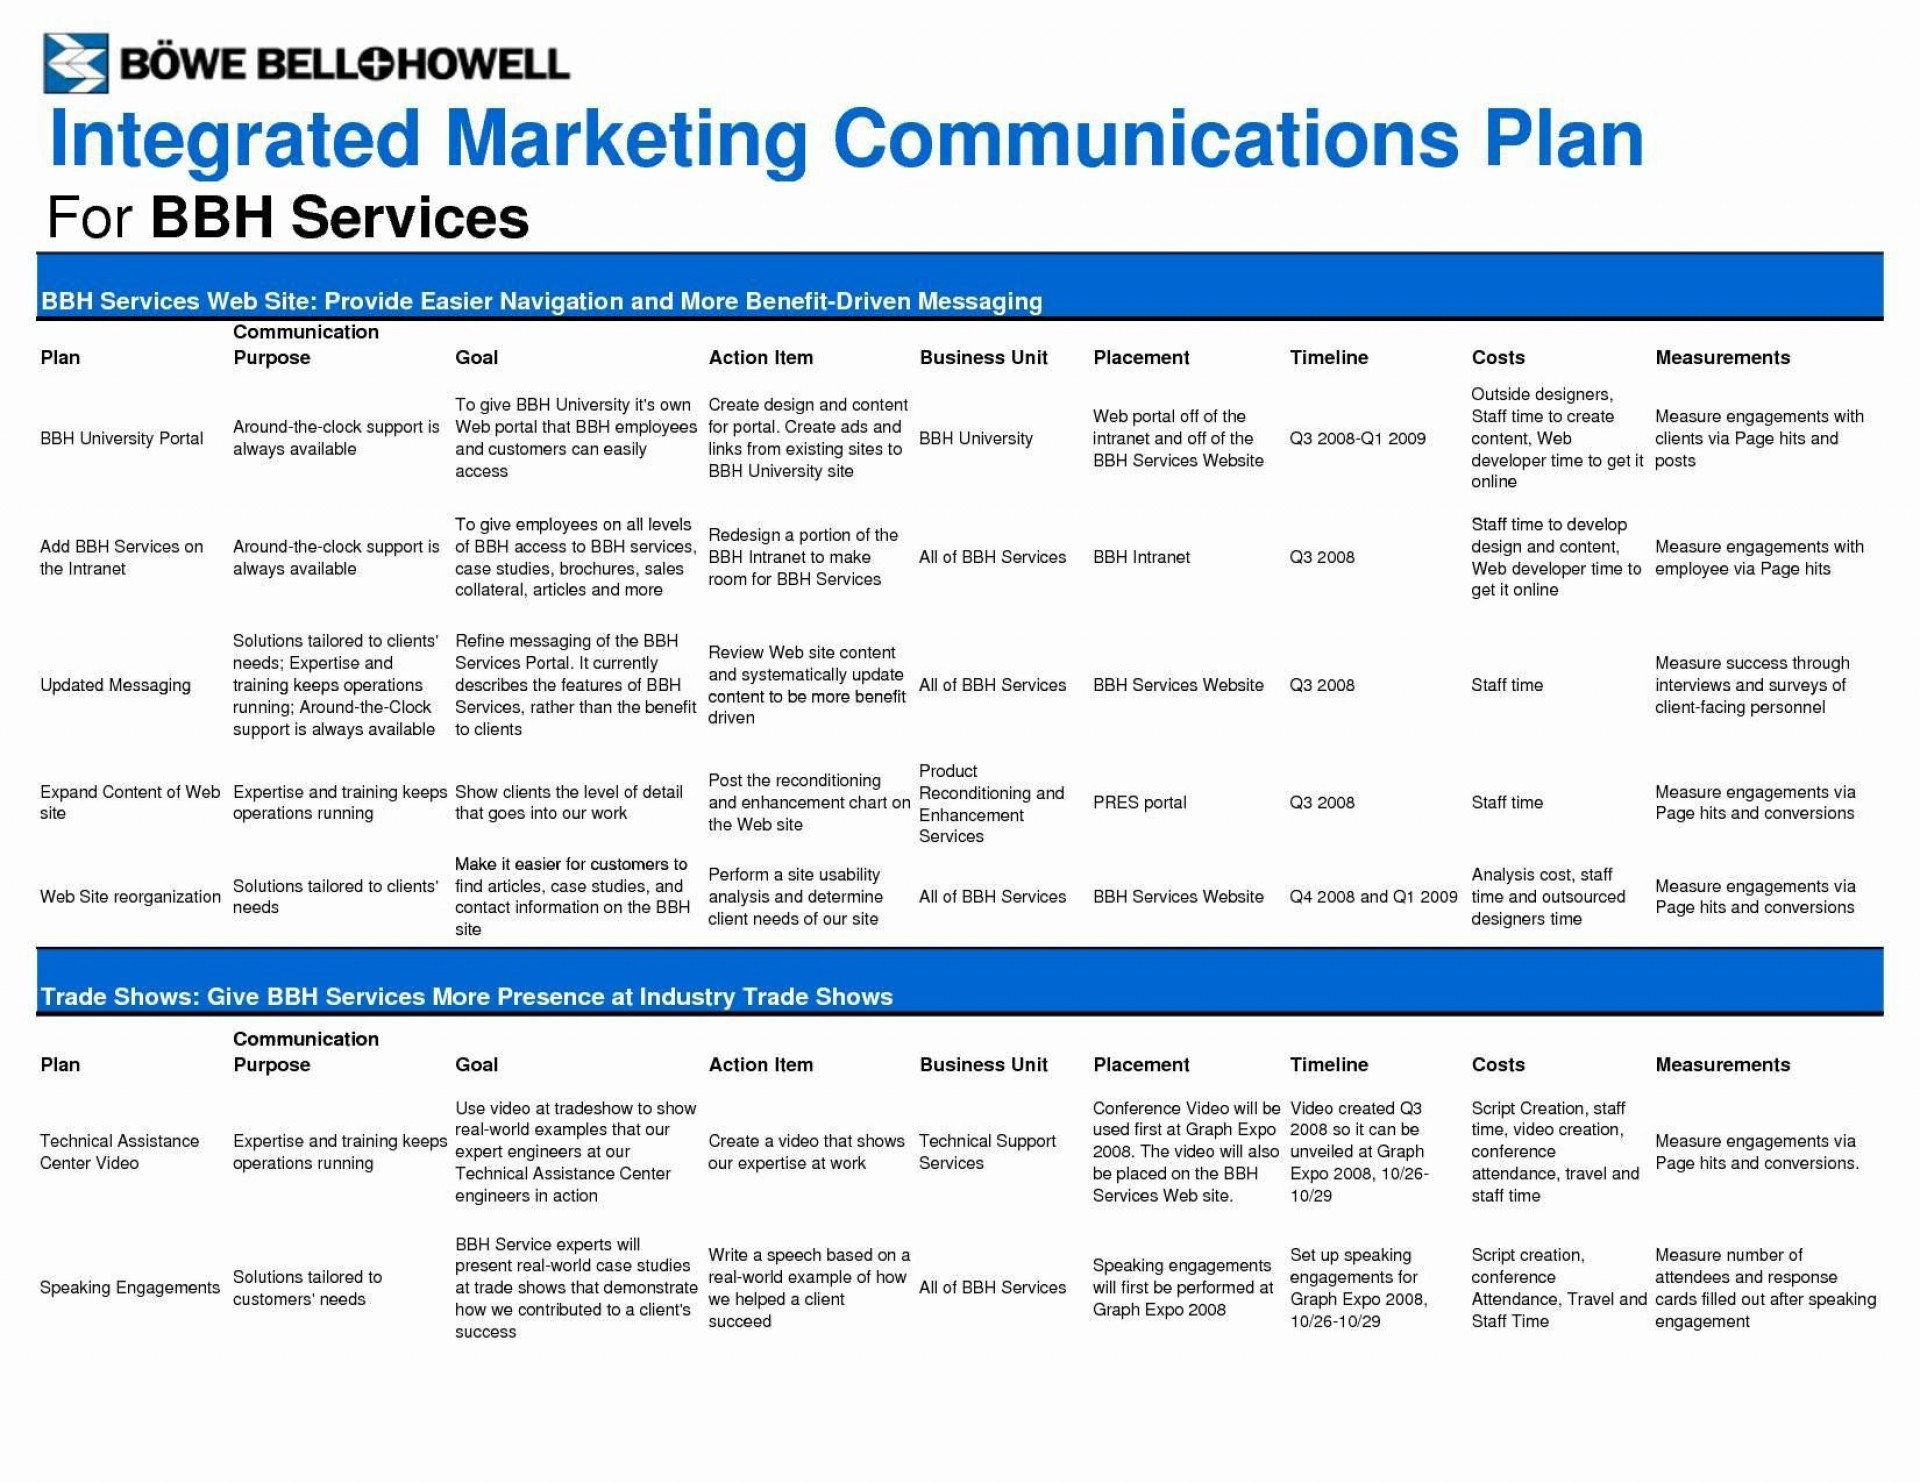 004 Unusual Marketing Communication Plan Template High Definition  Example Pdf Excel Integrated1920